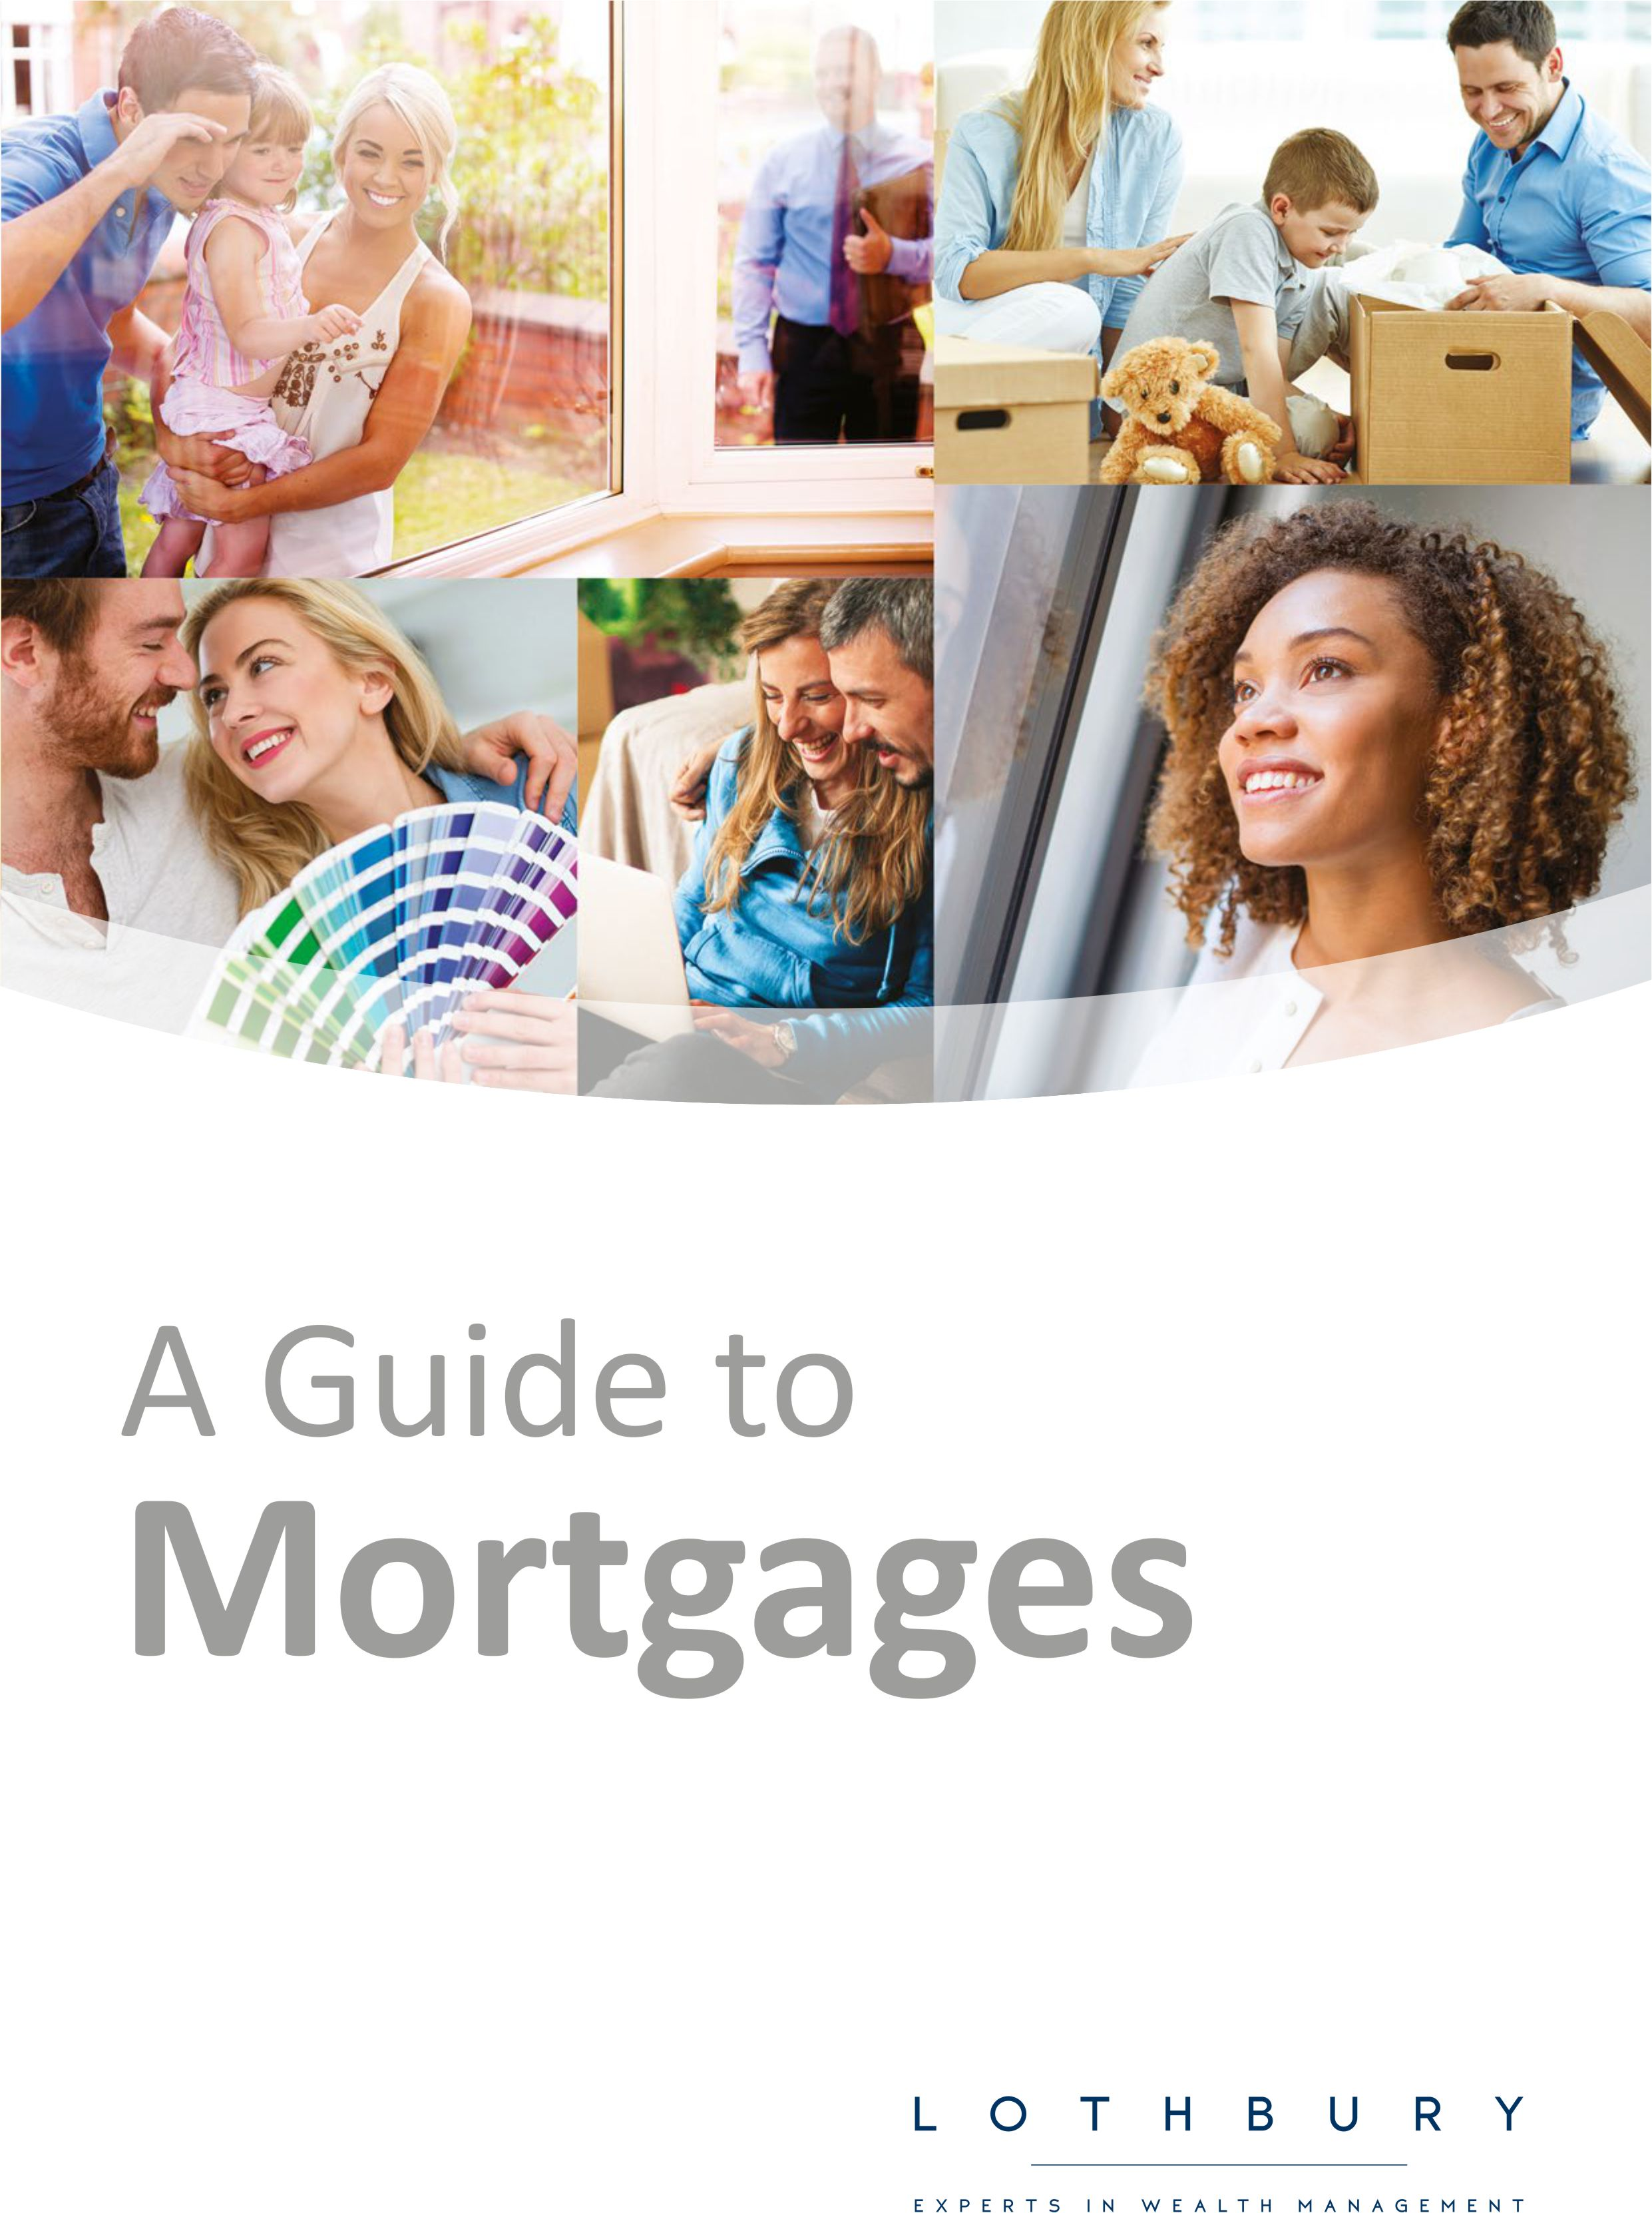 A Guide to mortgages - A guide to the different types of mortgages, the different types of interest rates, and some pointers to be aware of when taking on possibly the biggest financial commitment of your lifetime.